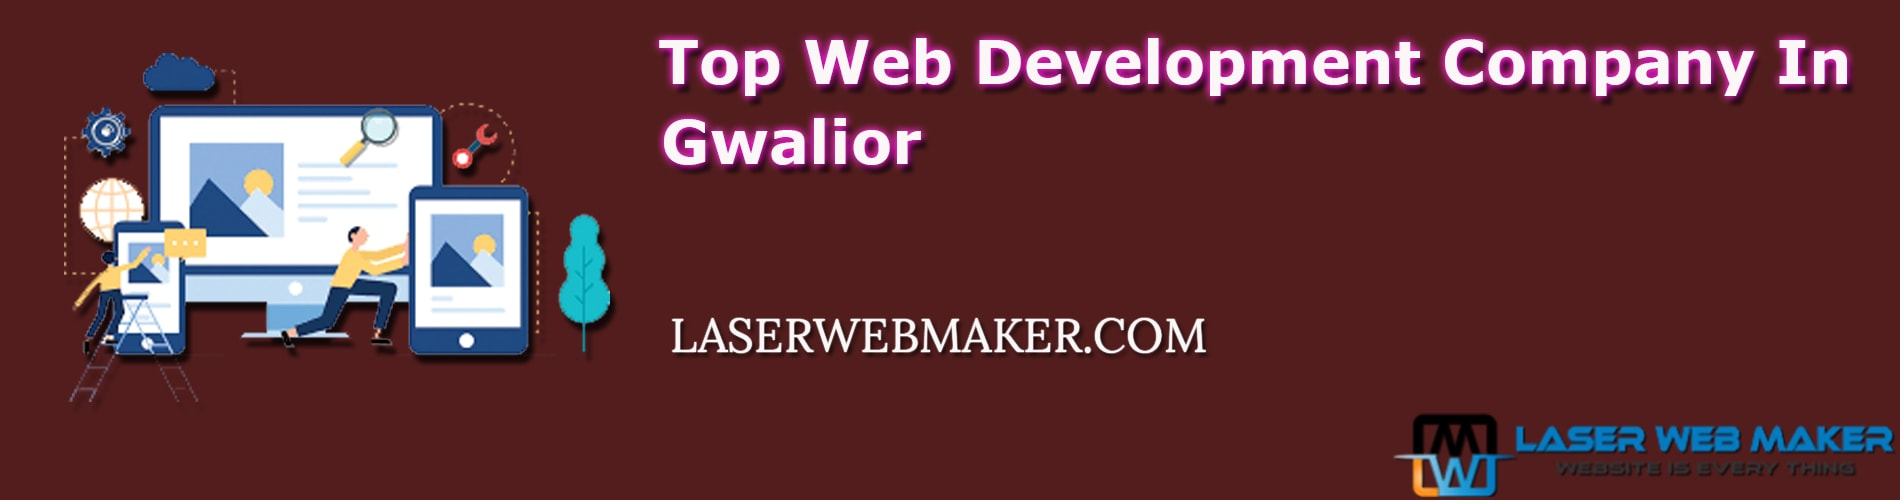 Top Web Development Company In Gwalior